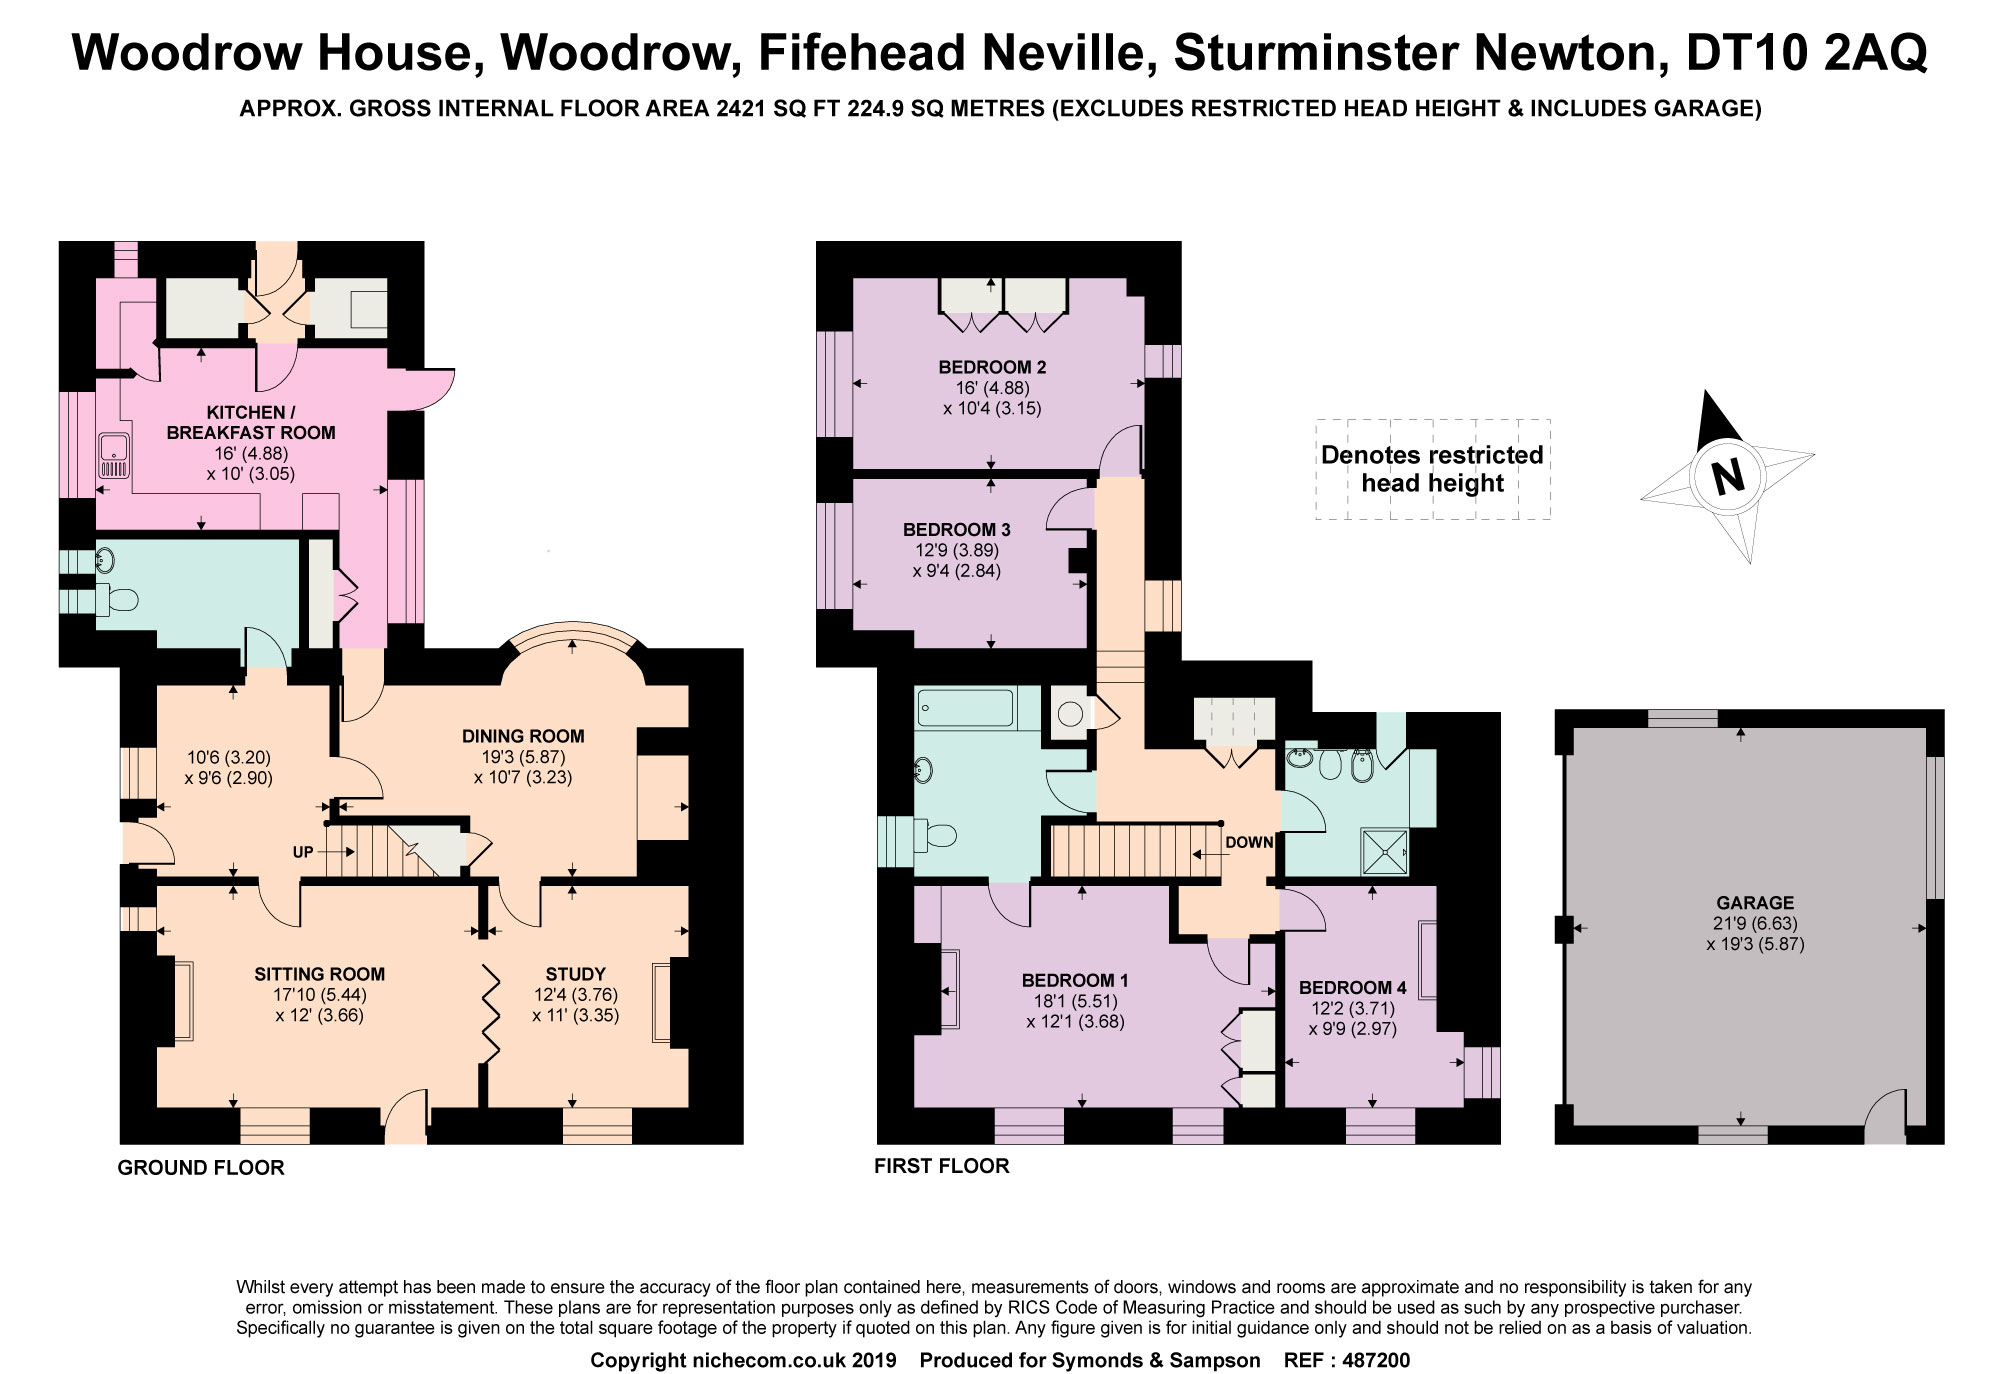 4 Bedrooms Detached house for sale in Woodrow, Fifehead Neville, Sturminster Newton, Dorset DT10